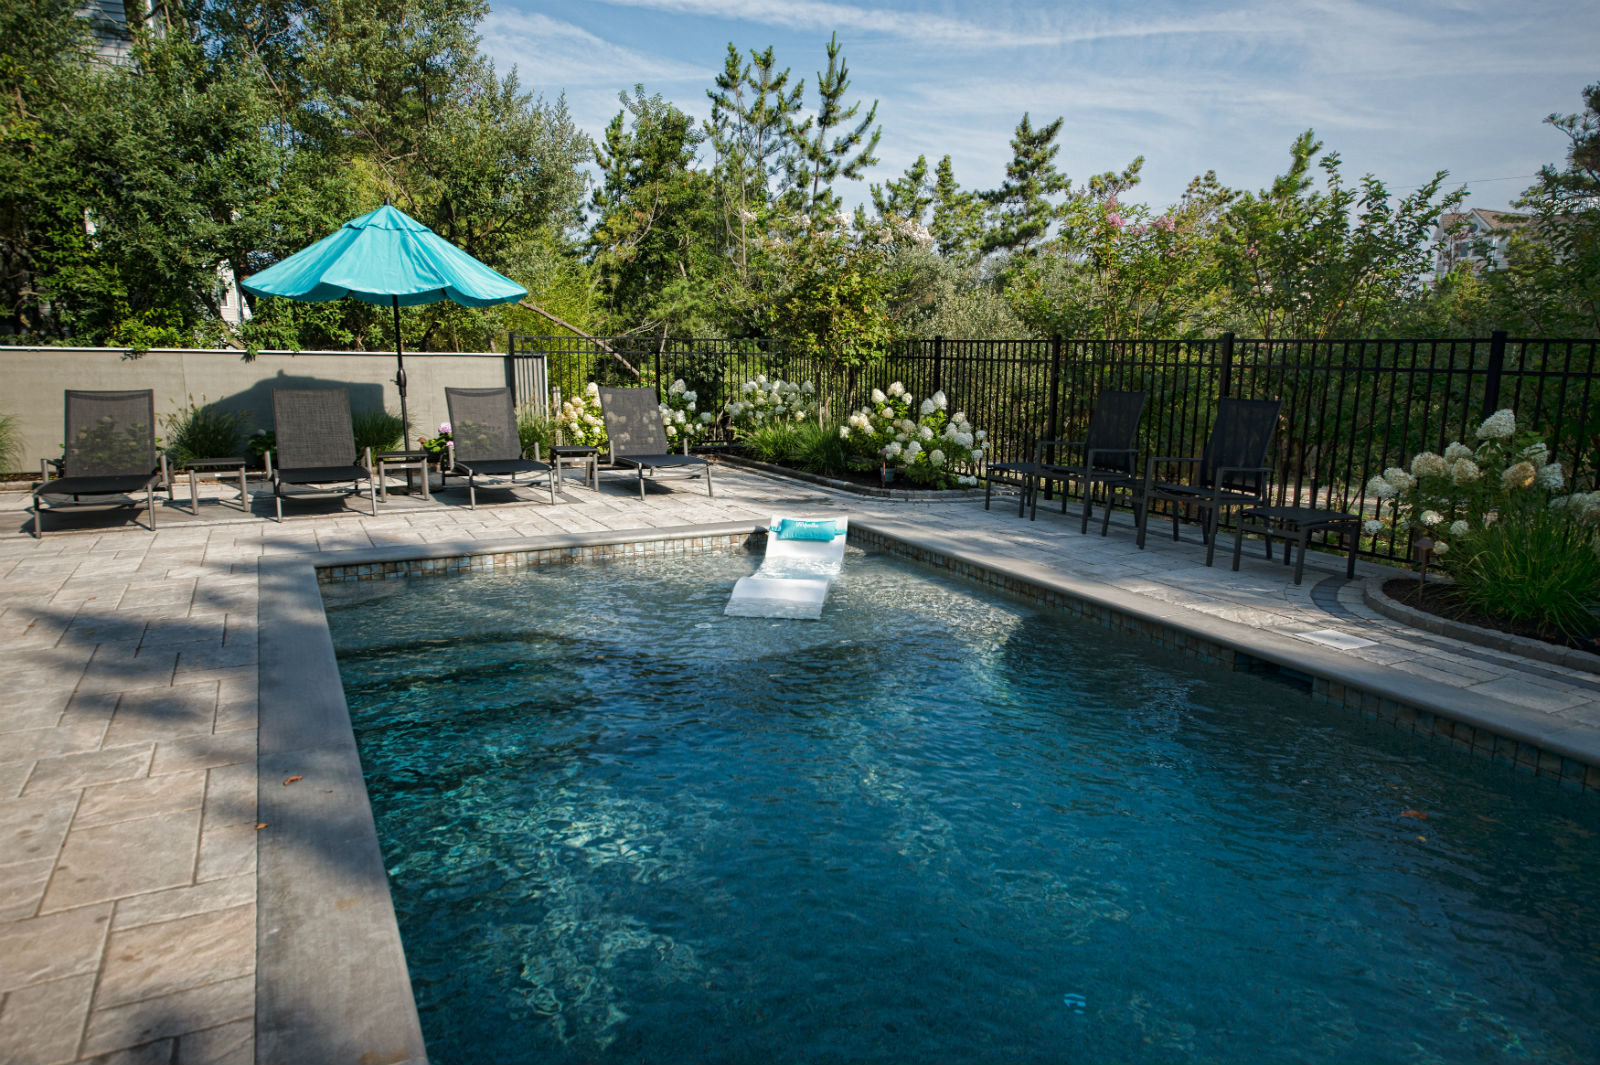 Inspired Pool Design to Enhance Your Outdoor Space